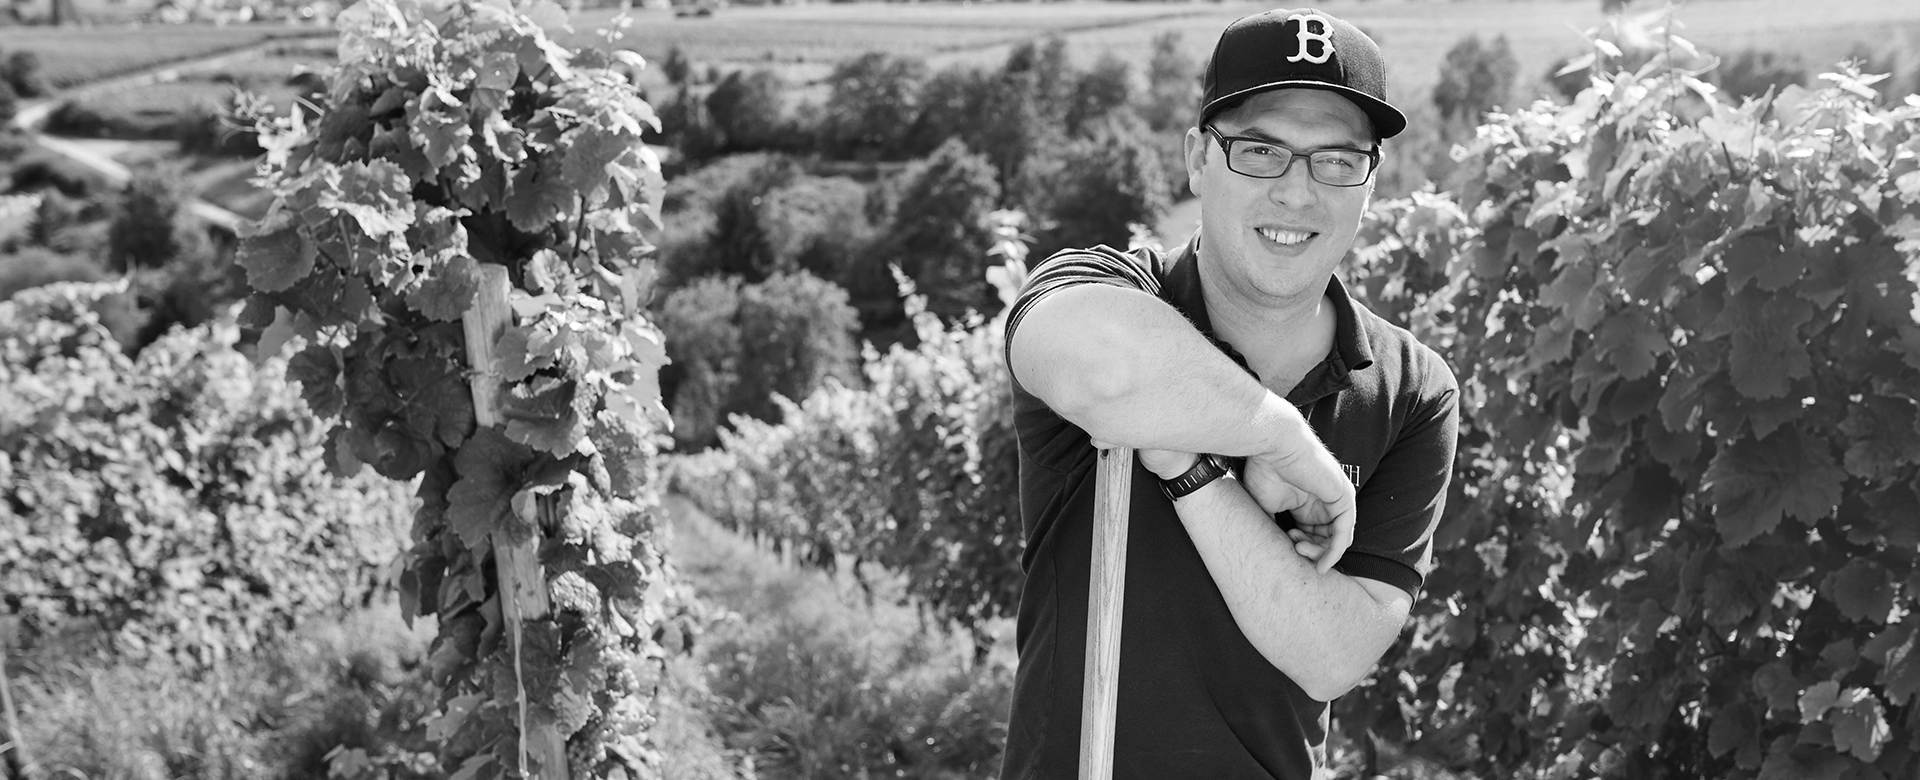 Mark BARTH Handarbeit im Weinberg